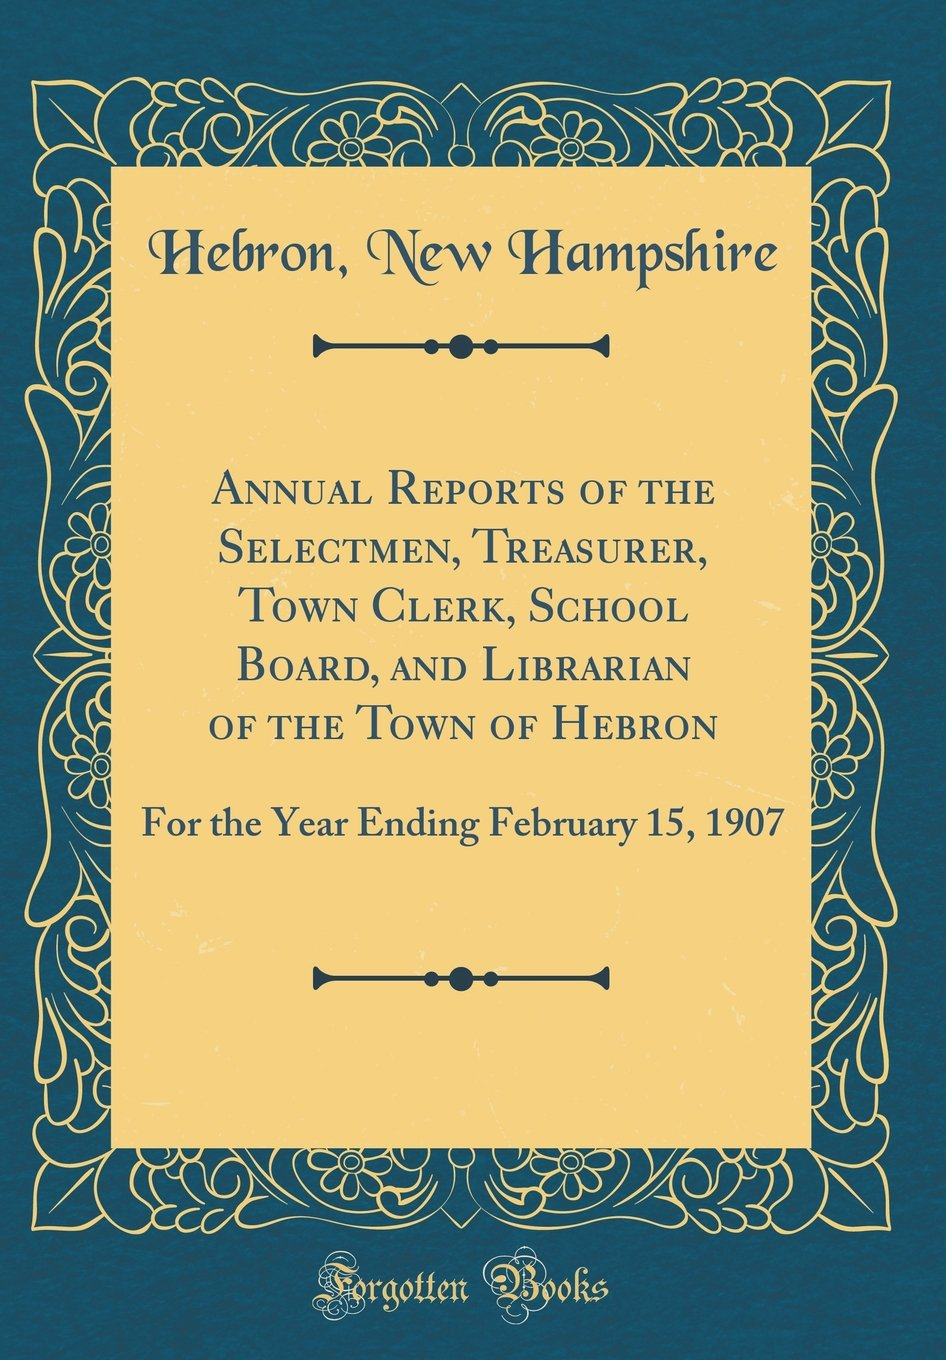 Download Annual Reports of the Selectmen, Treasurer, Town Clerk, School Board, and Librarian of the Town of Hebron: For the Year Ending February 15, 1907 (Classic Reprint) ebook